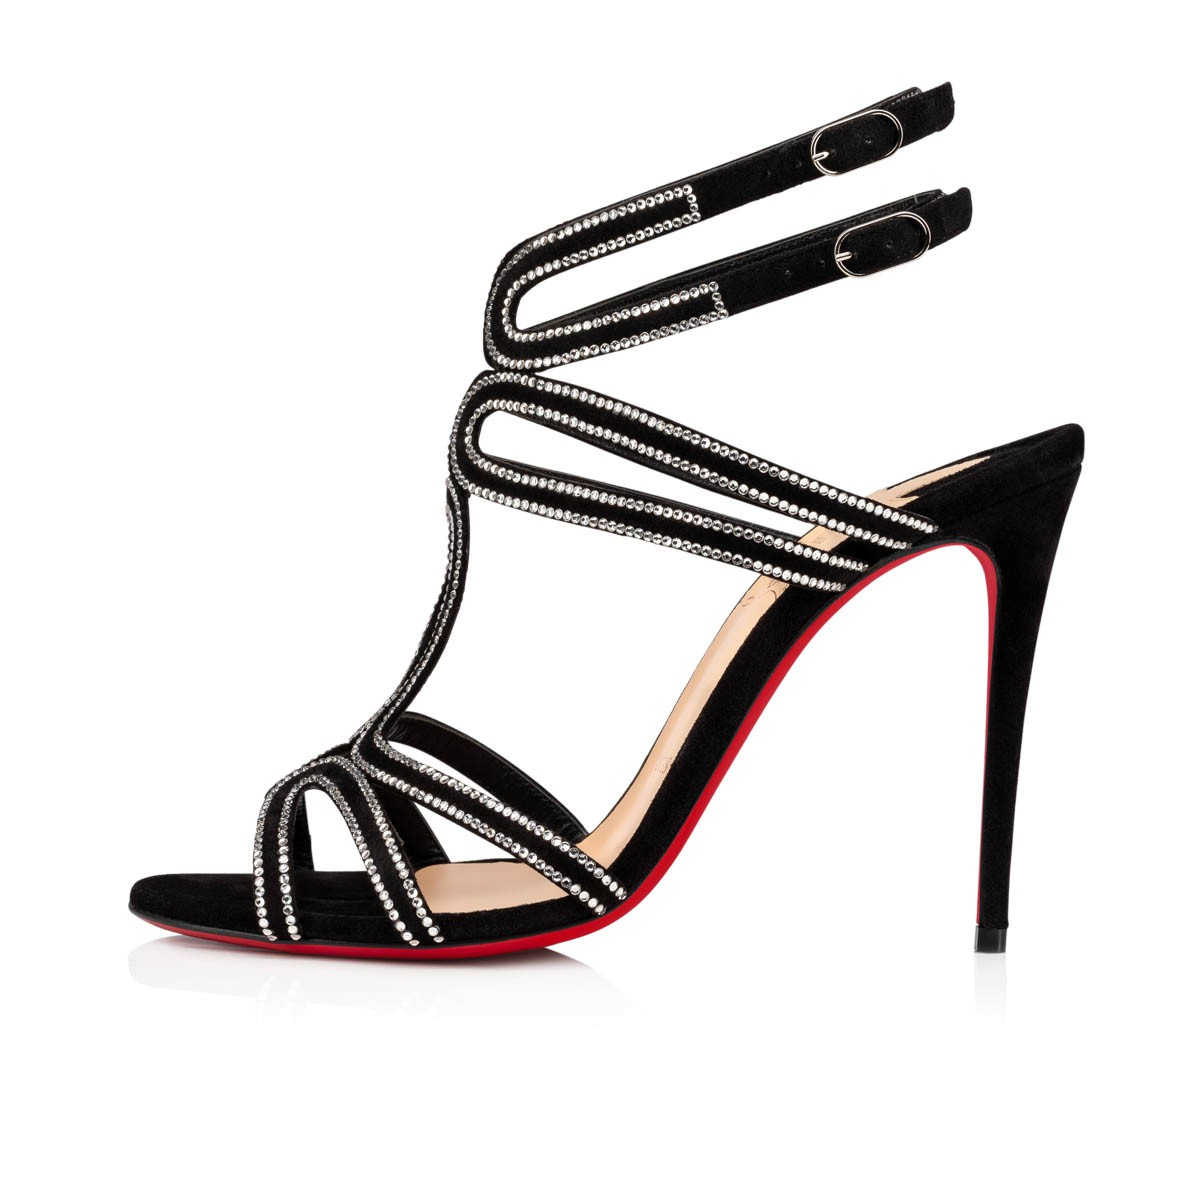 Shoes - Renee Strass - Christian Louboutin